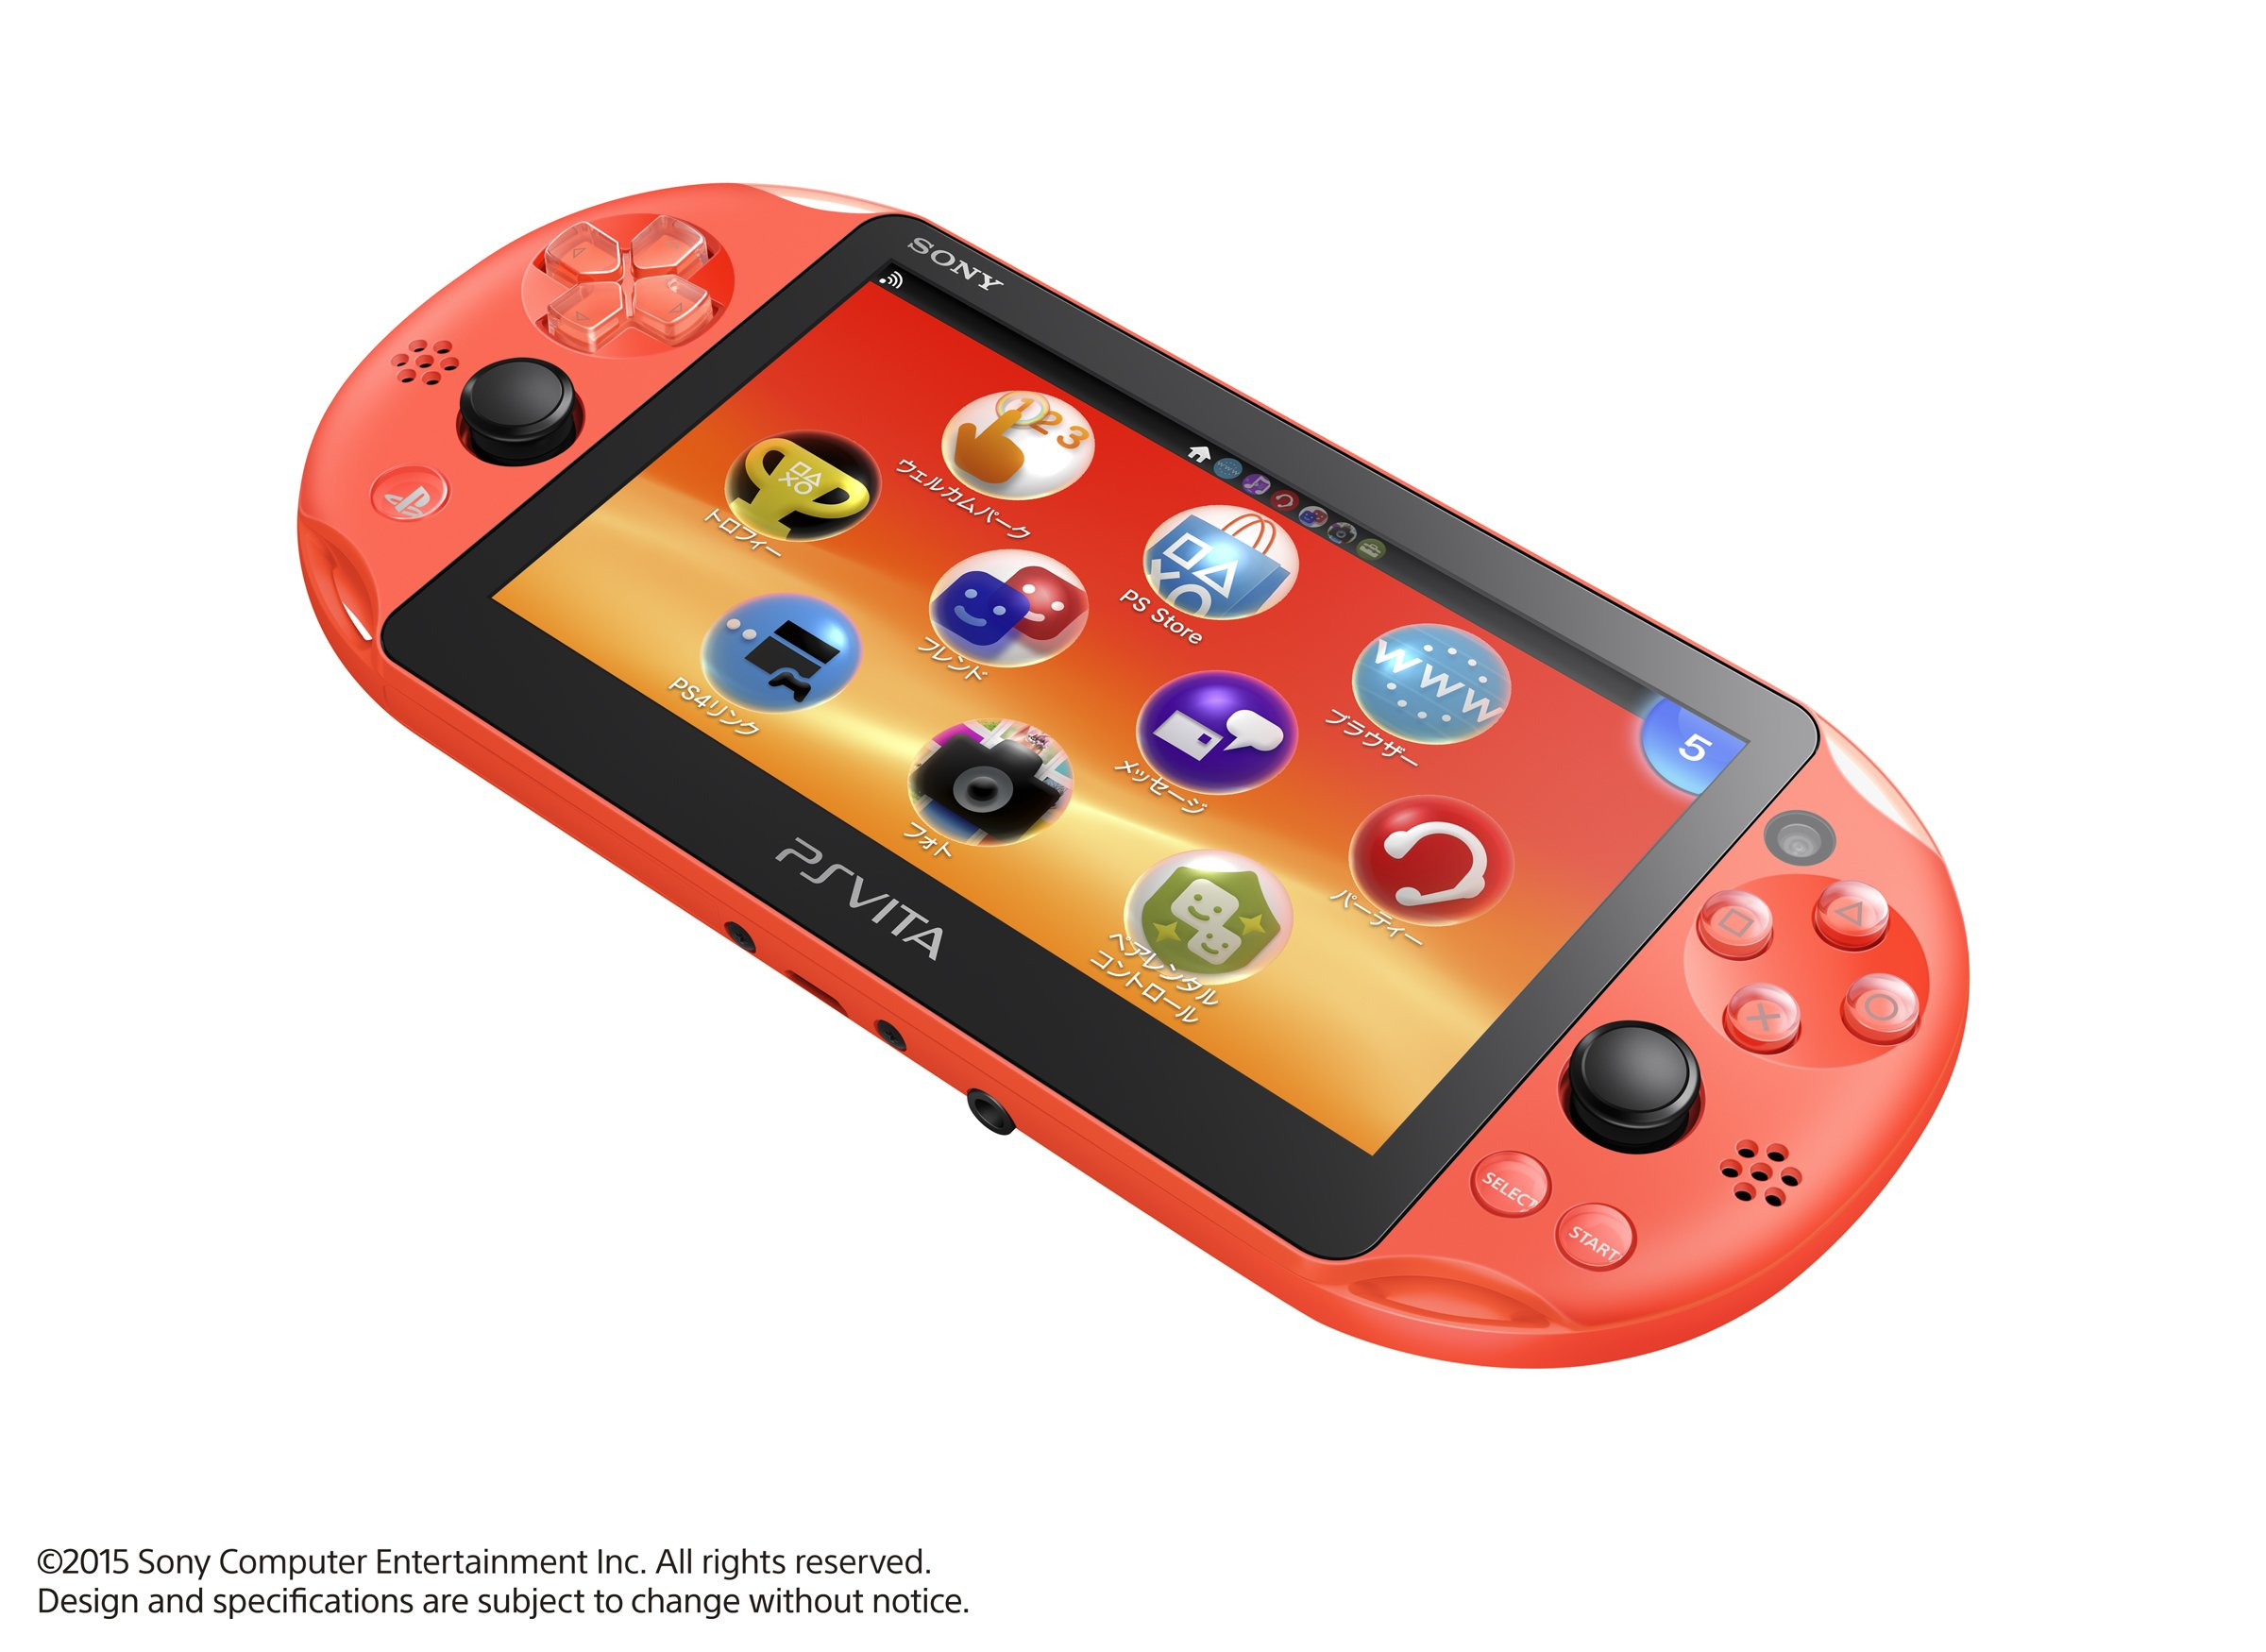 PlayStation Vita Wi-Fi model Neon Orange (PCH-2000ZA24) Japanese Ver. Japan Import by Sony (Image #2)